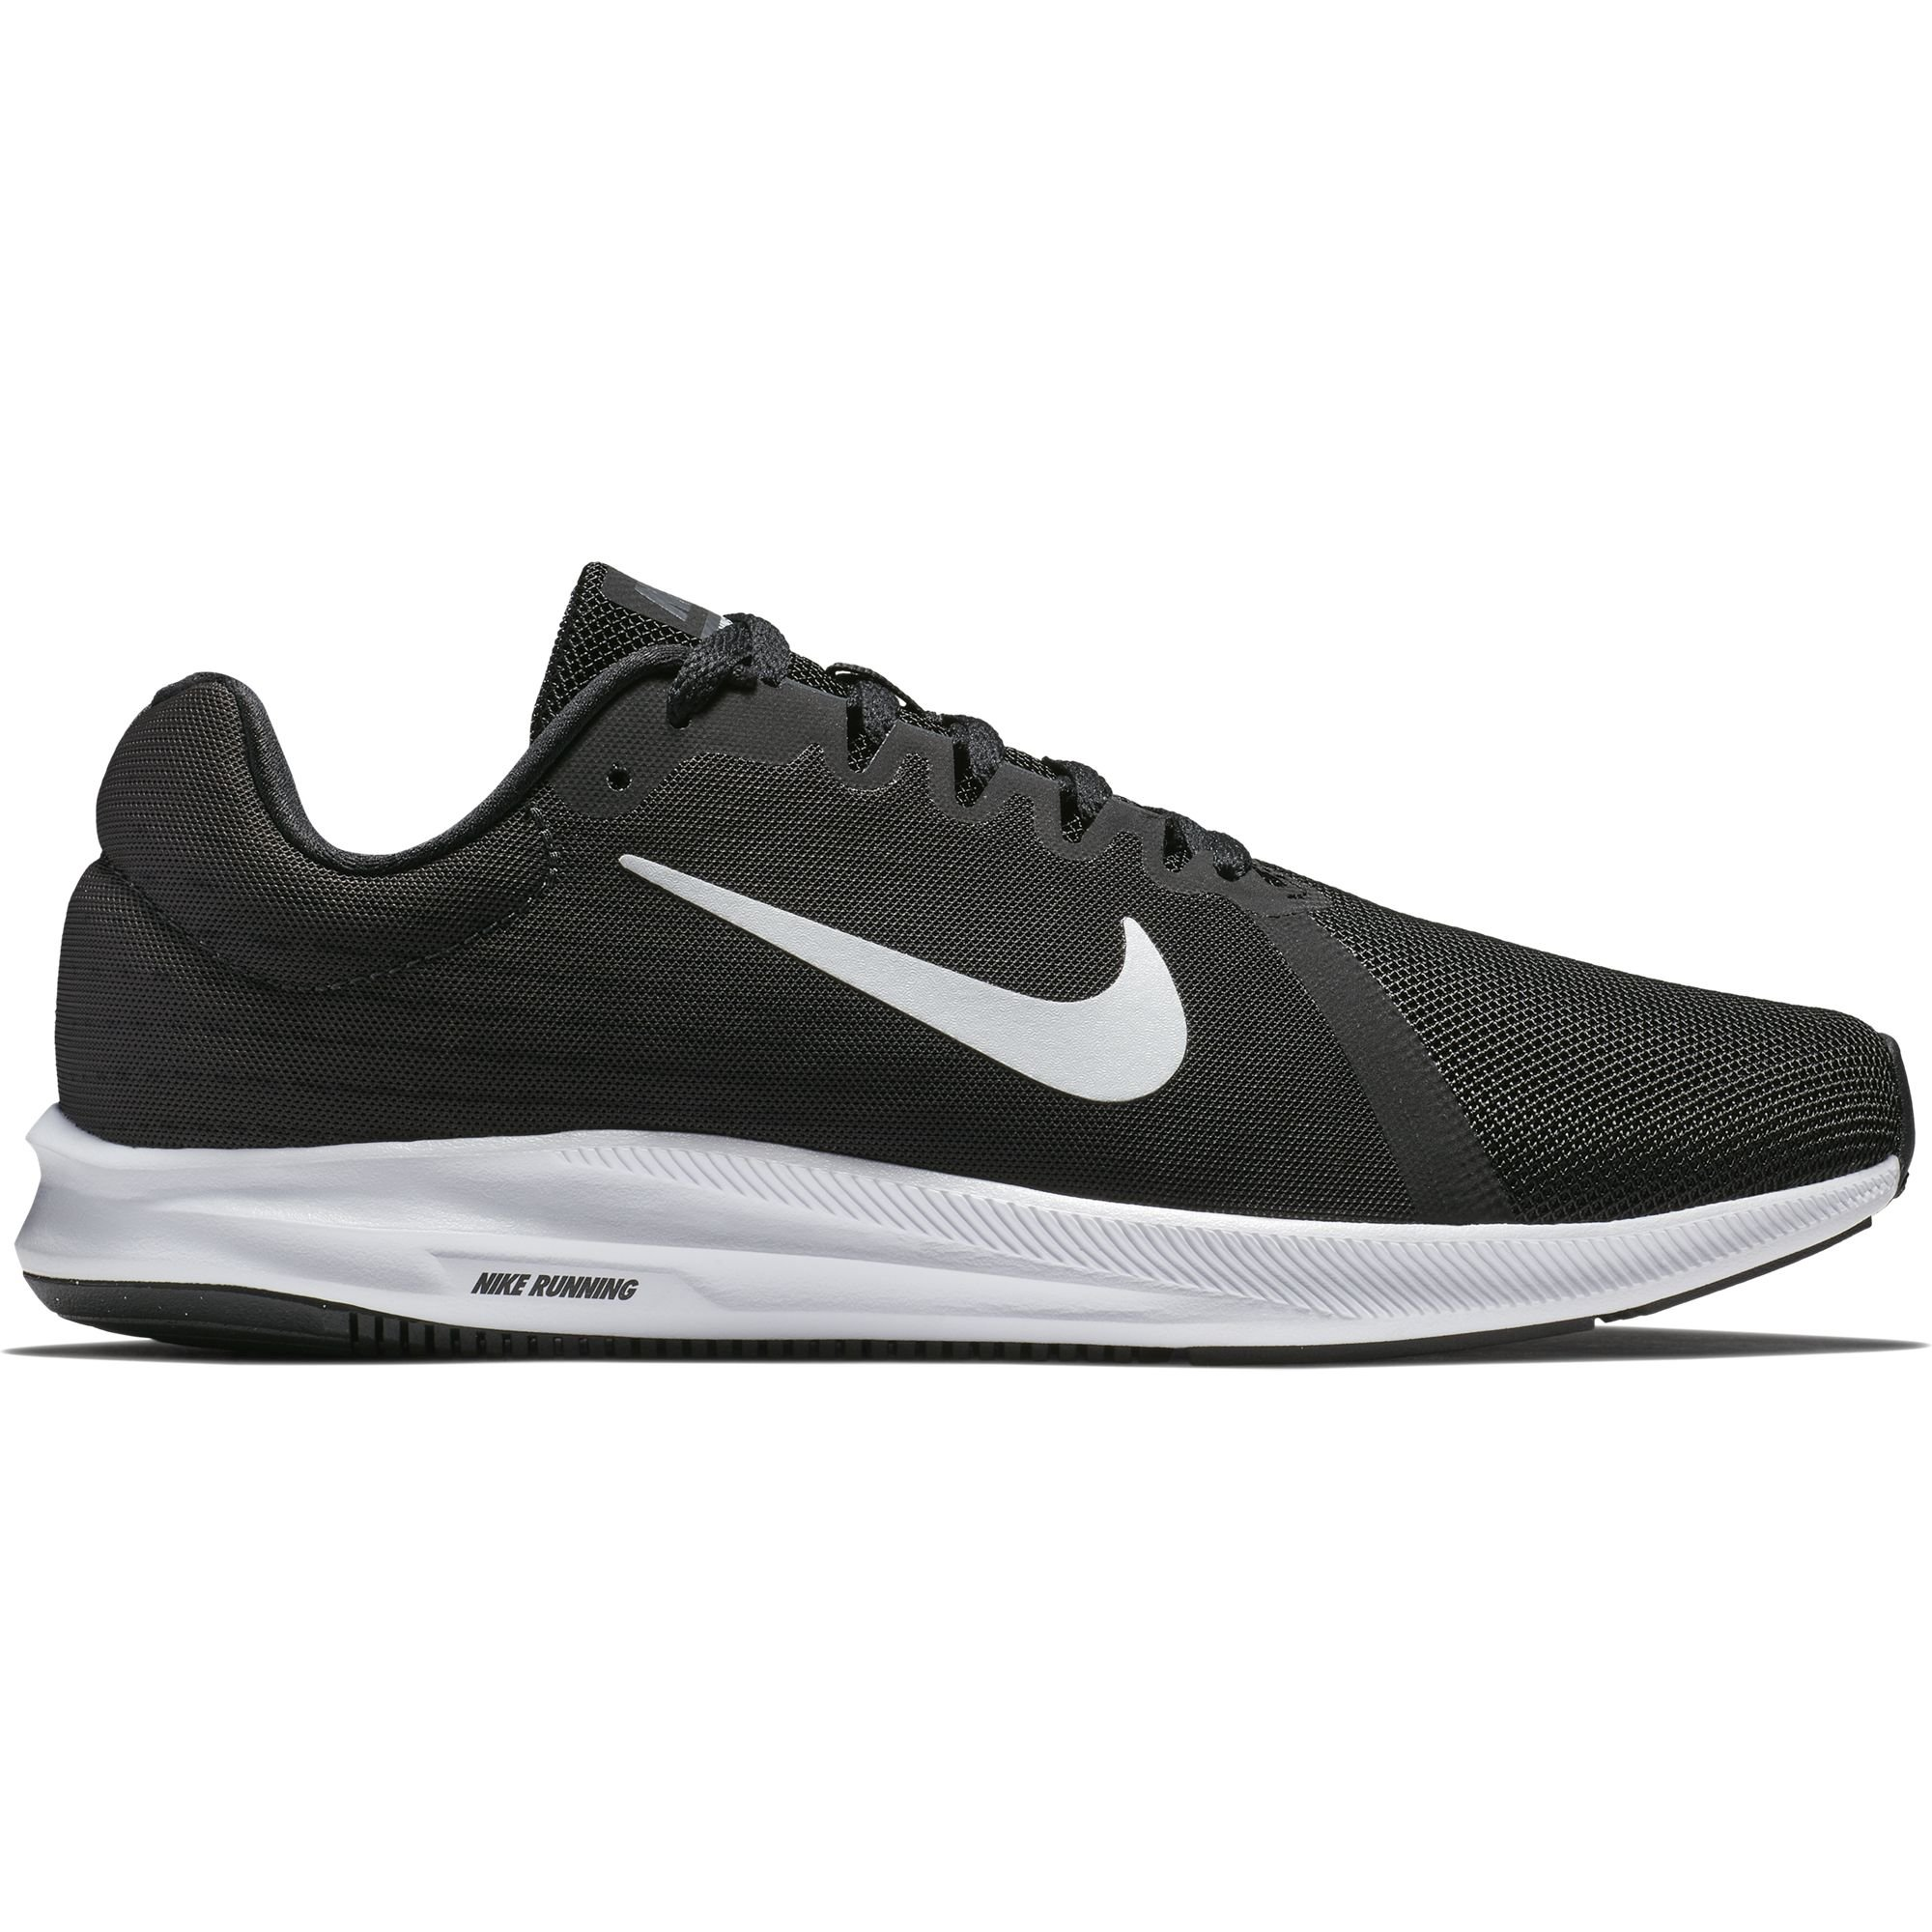 e6432d0d0b6 Galleon - Nike Men s Downshifter 8 Running Shoe Wide 4E  Black White Anthracite Size 7.5 Wide 4E❗️Ships Directly From Nike❗️